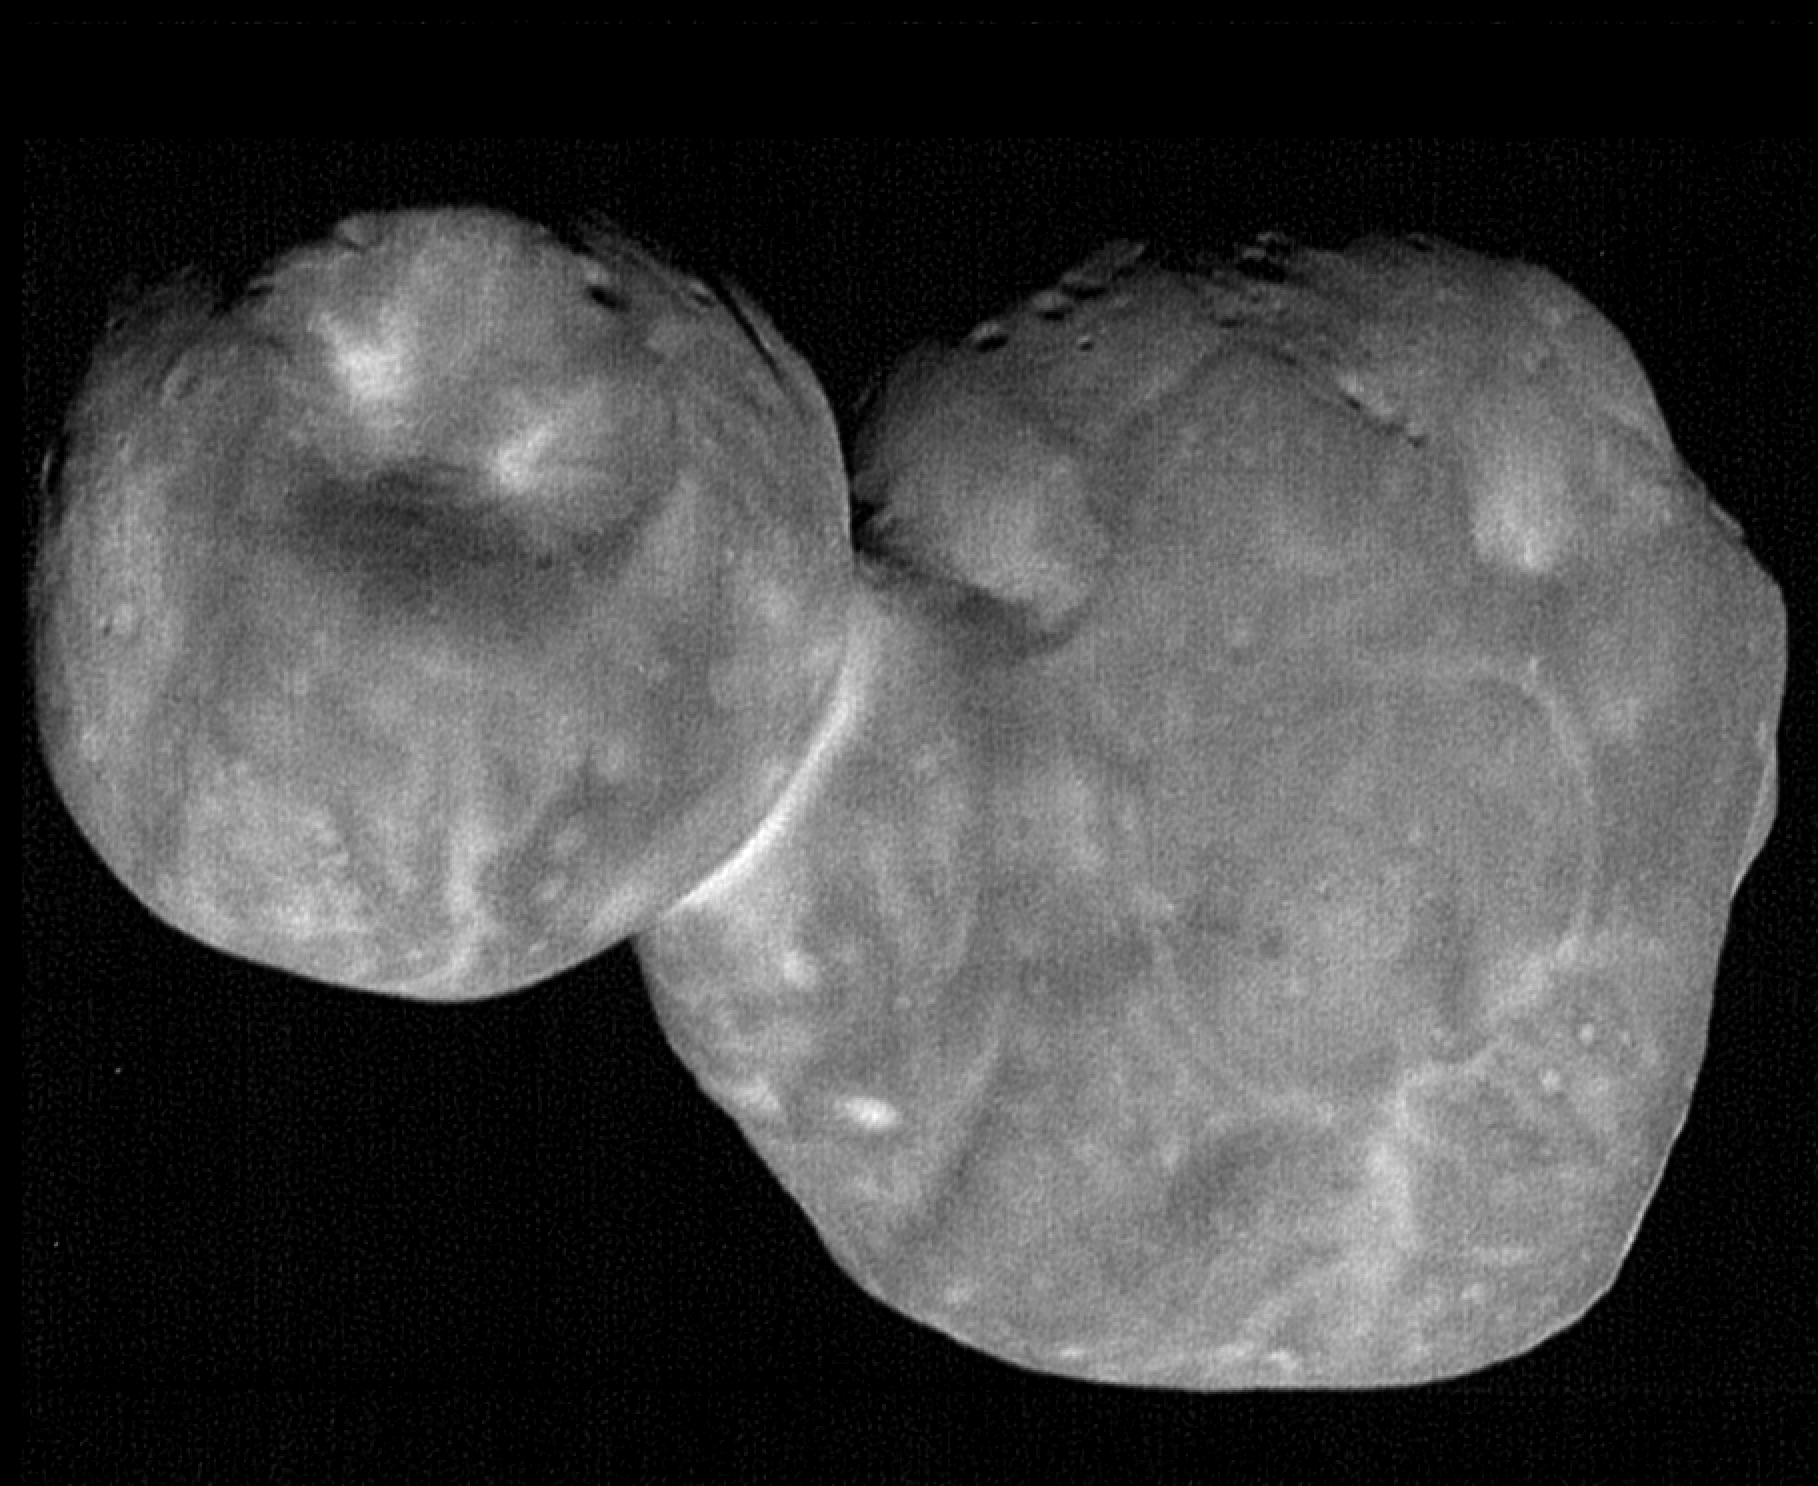 Highest-resolution image of 2014 MU69 (Ultima Thule)